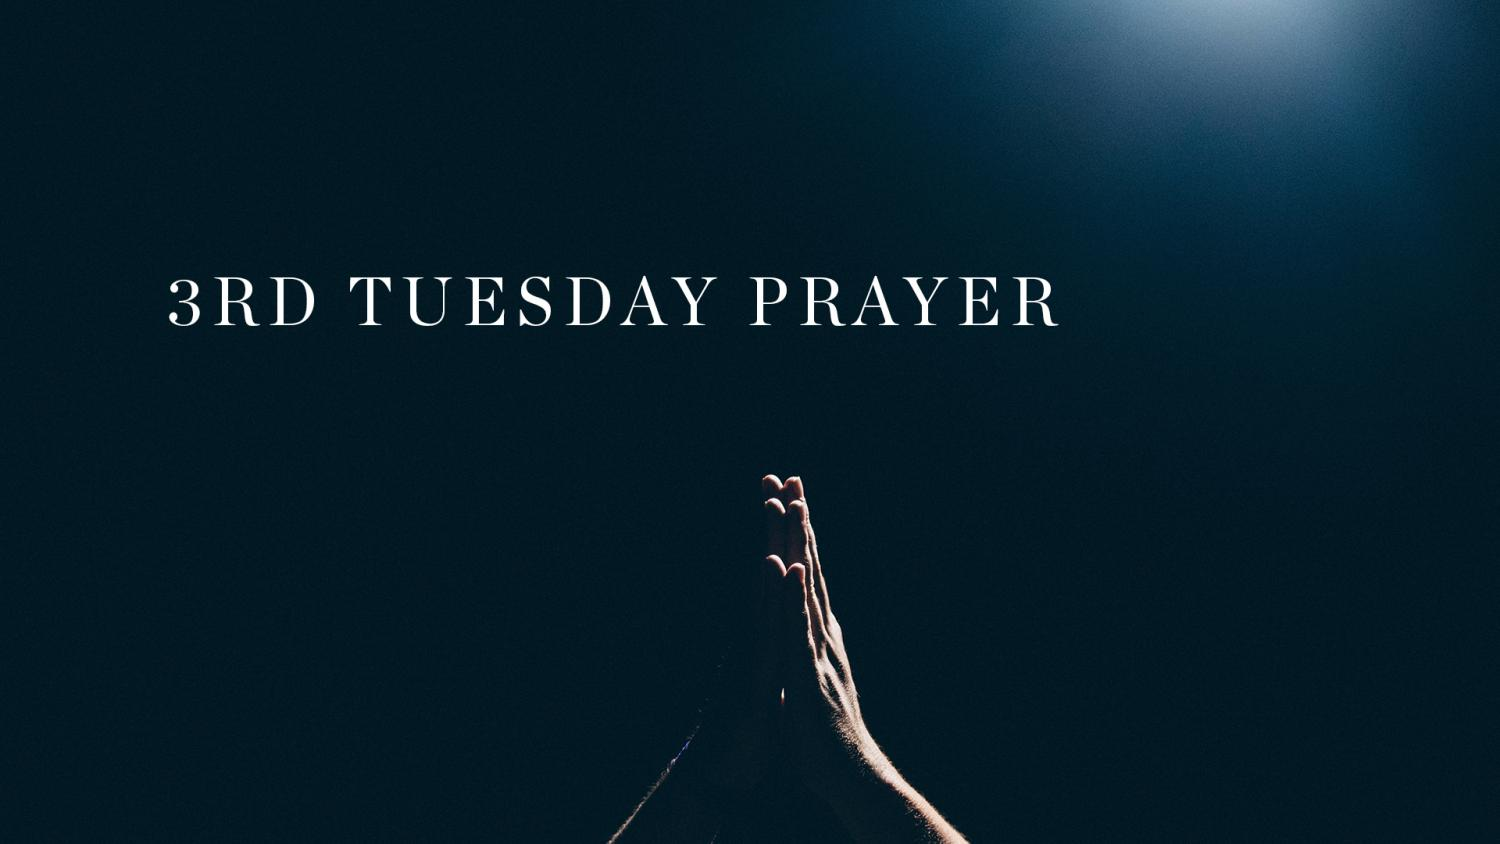 Third Tuesday Prayer